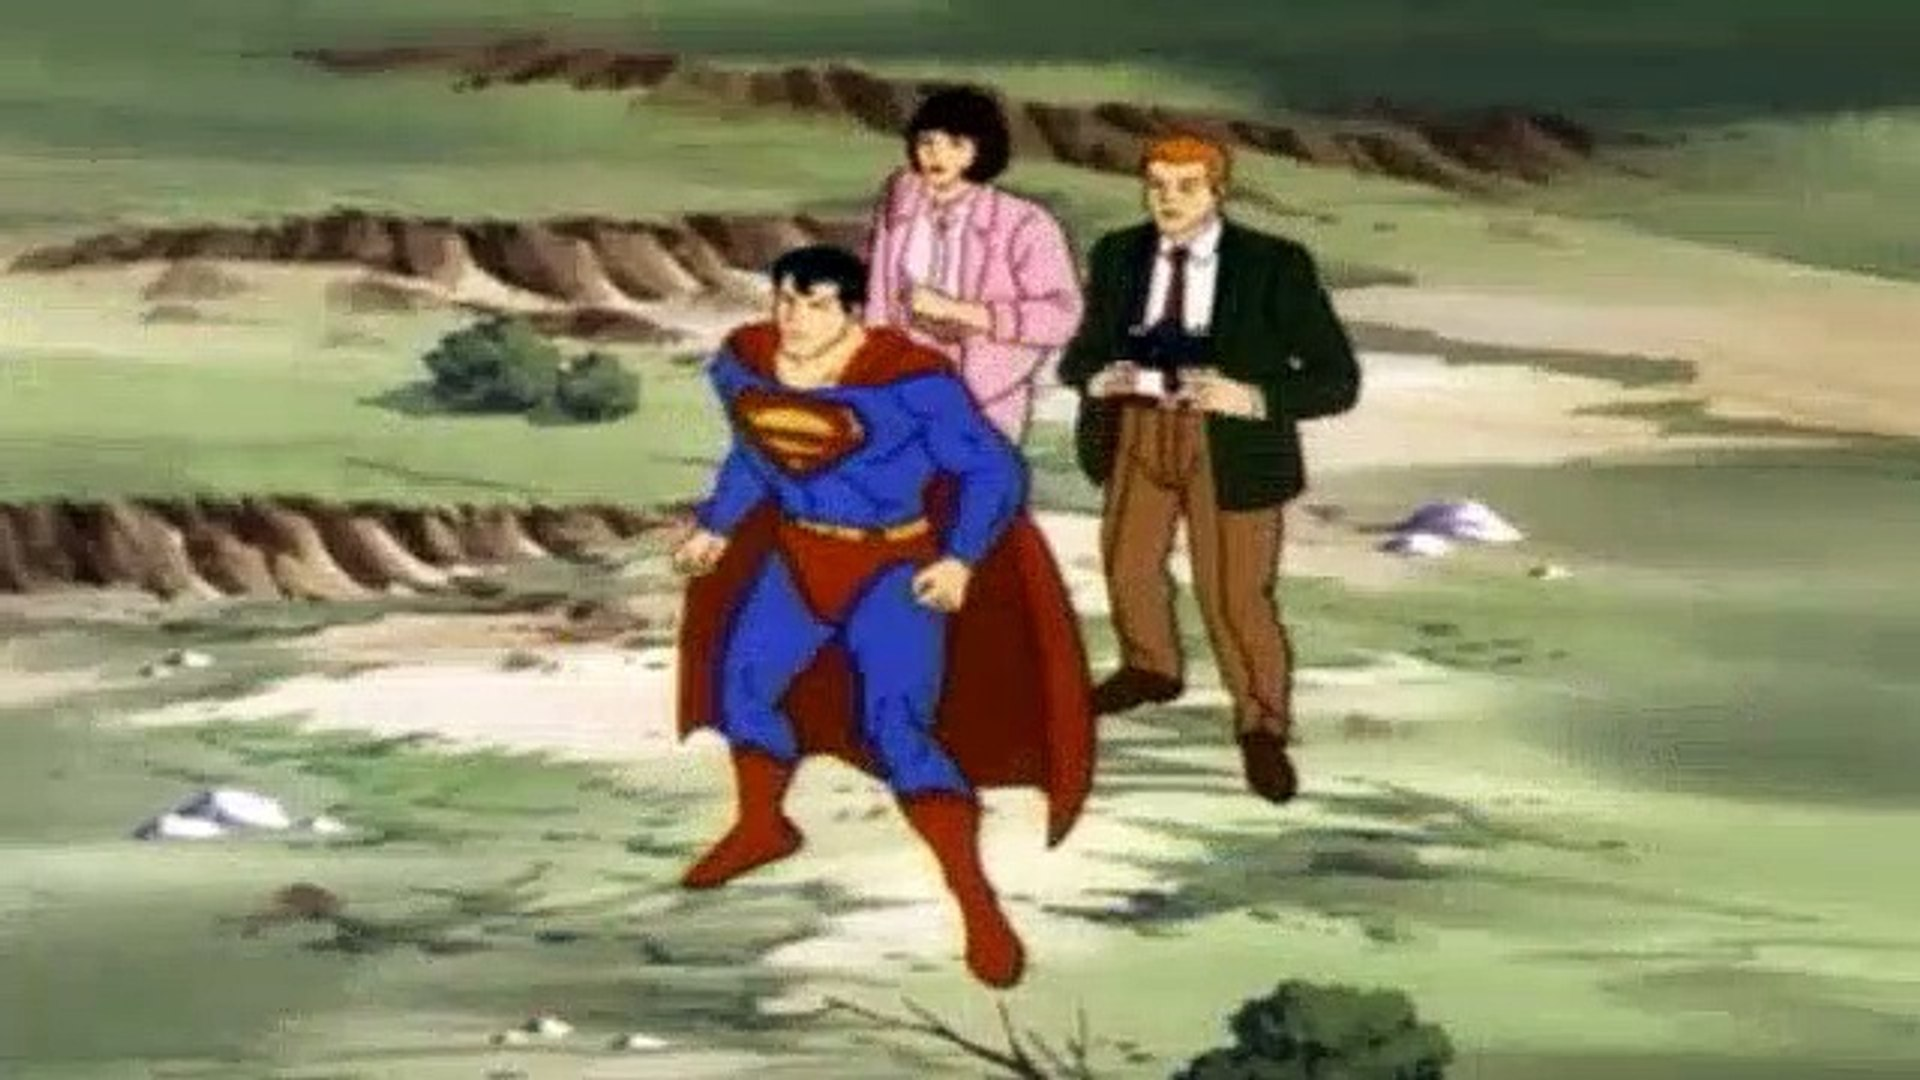 Superman Ruby Spears S01e04 Cybron Strikes The First Day At